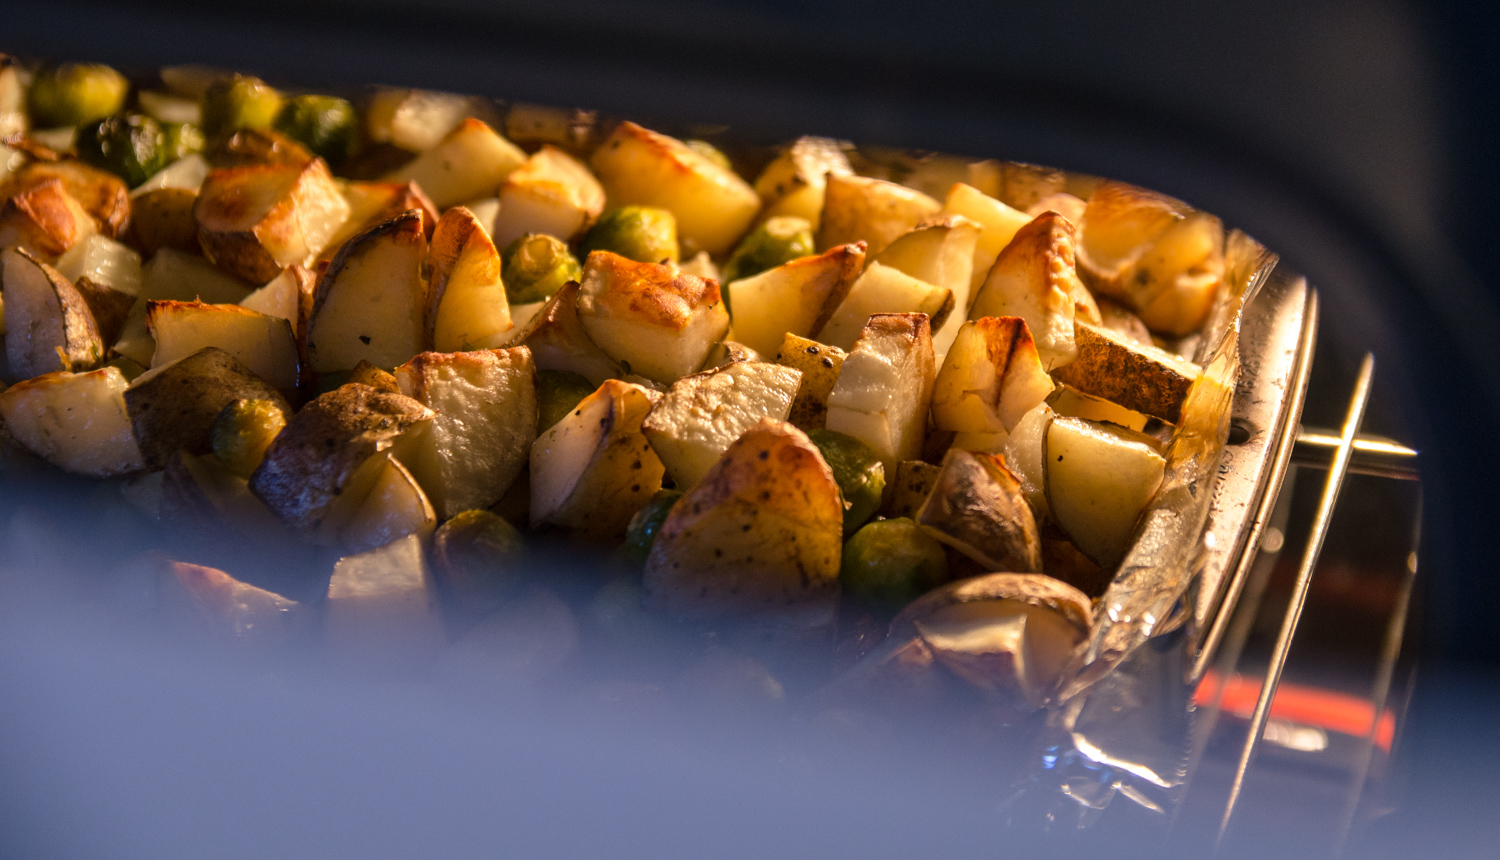 Image: This food was photographed while still in the oven. The warm backlight is coming from the ove...